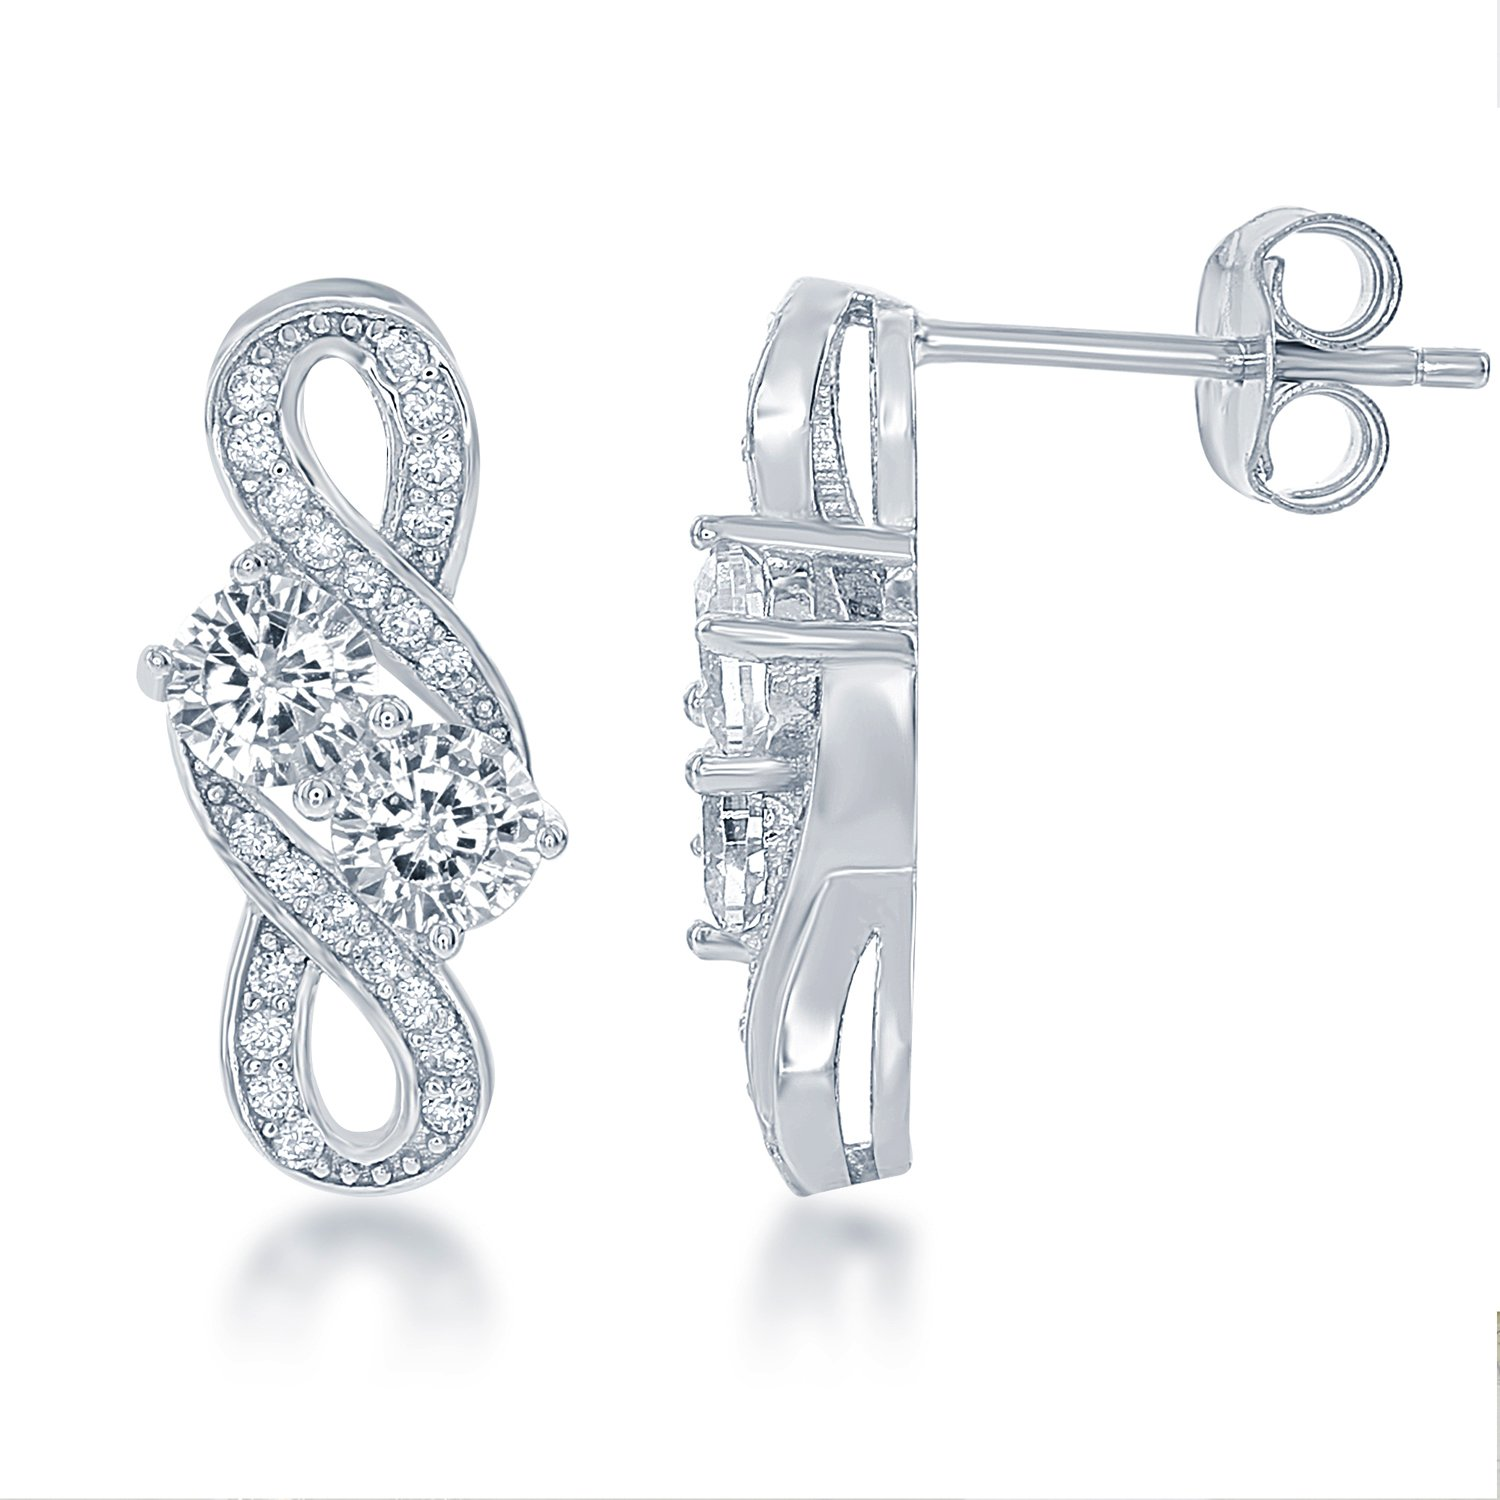 Sterling Silver Two-Stone Forever CZ Stud Earrings